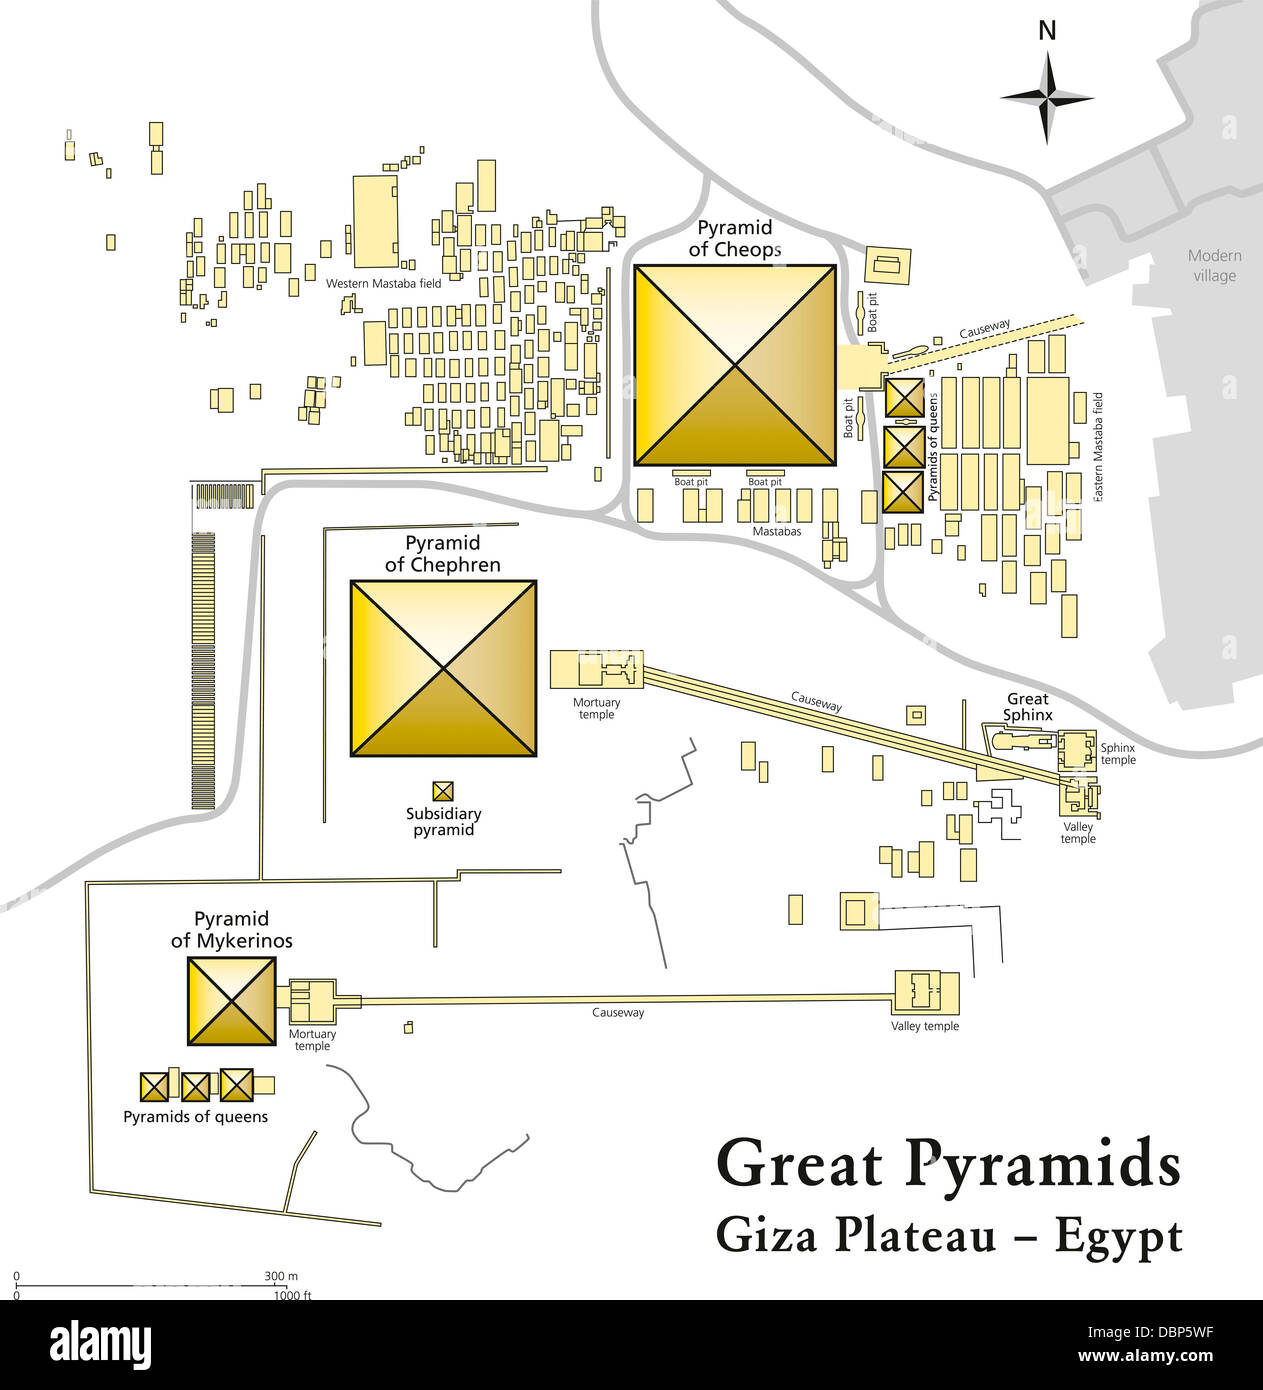 Pyramids Of Giza Map Stock Photo Royalty Free Image Alamy - Map of egypt pyramids and sphinx